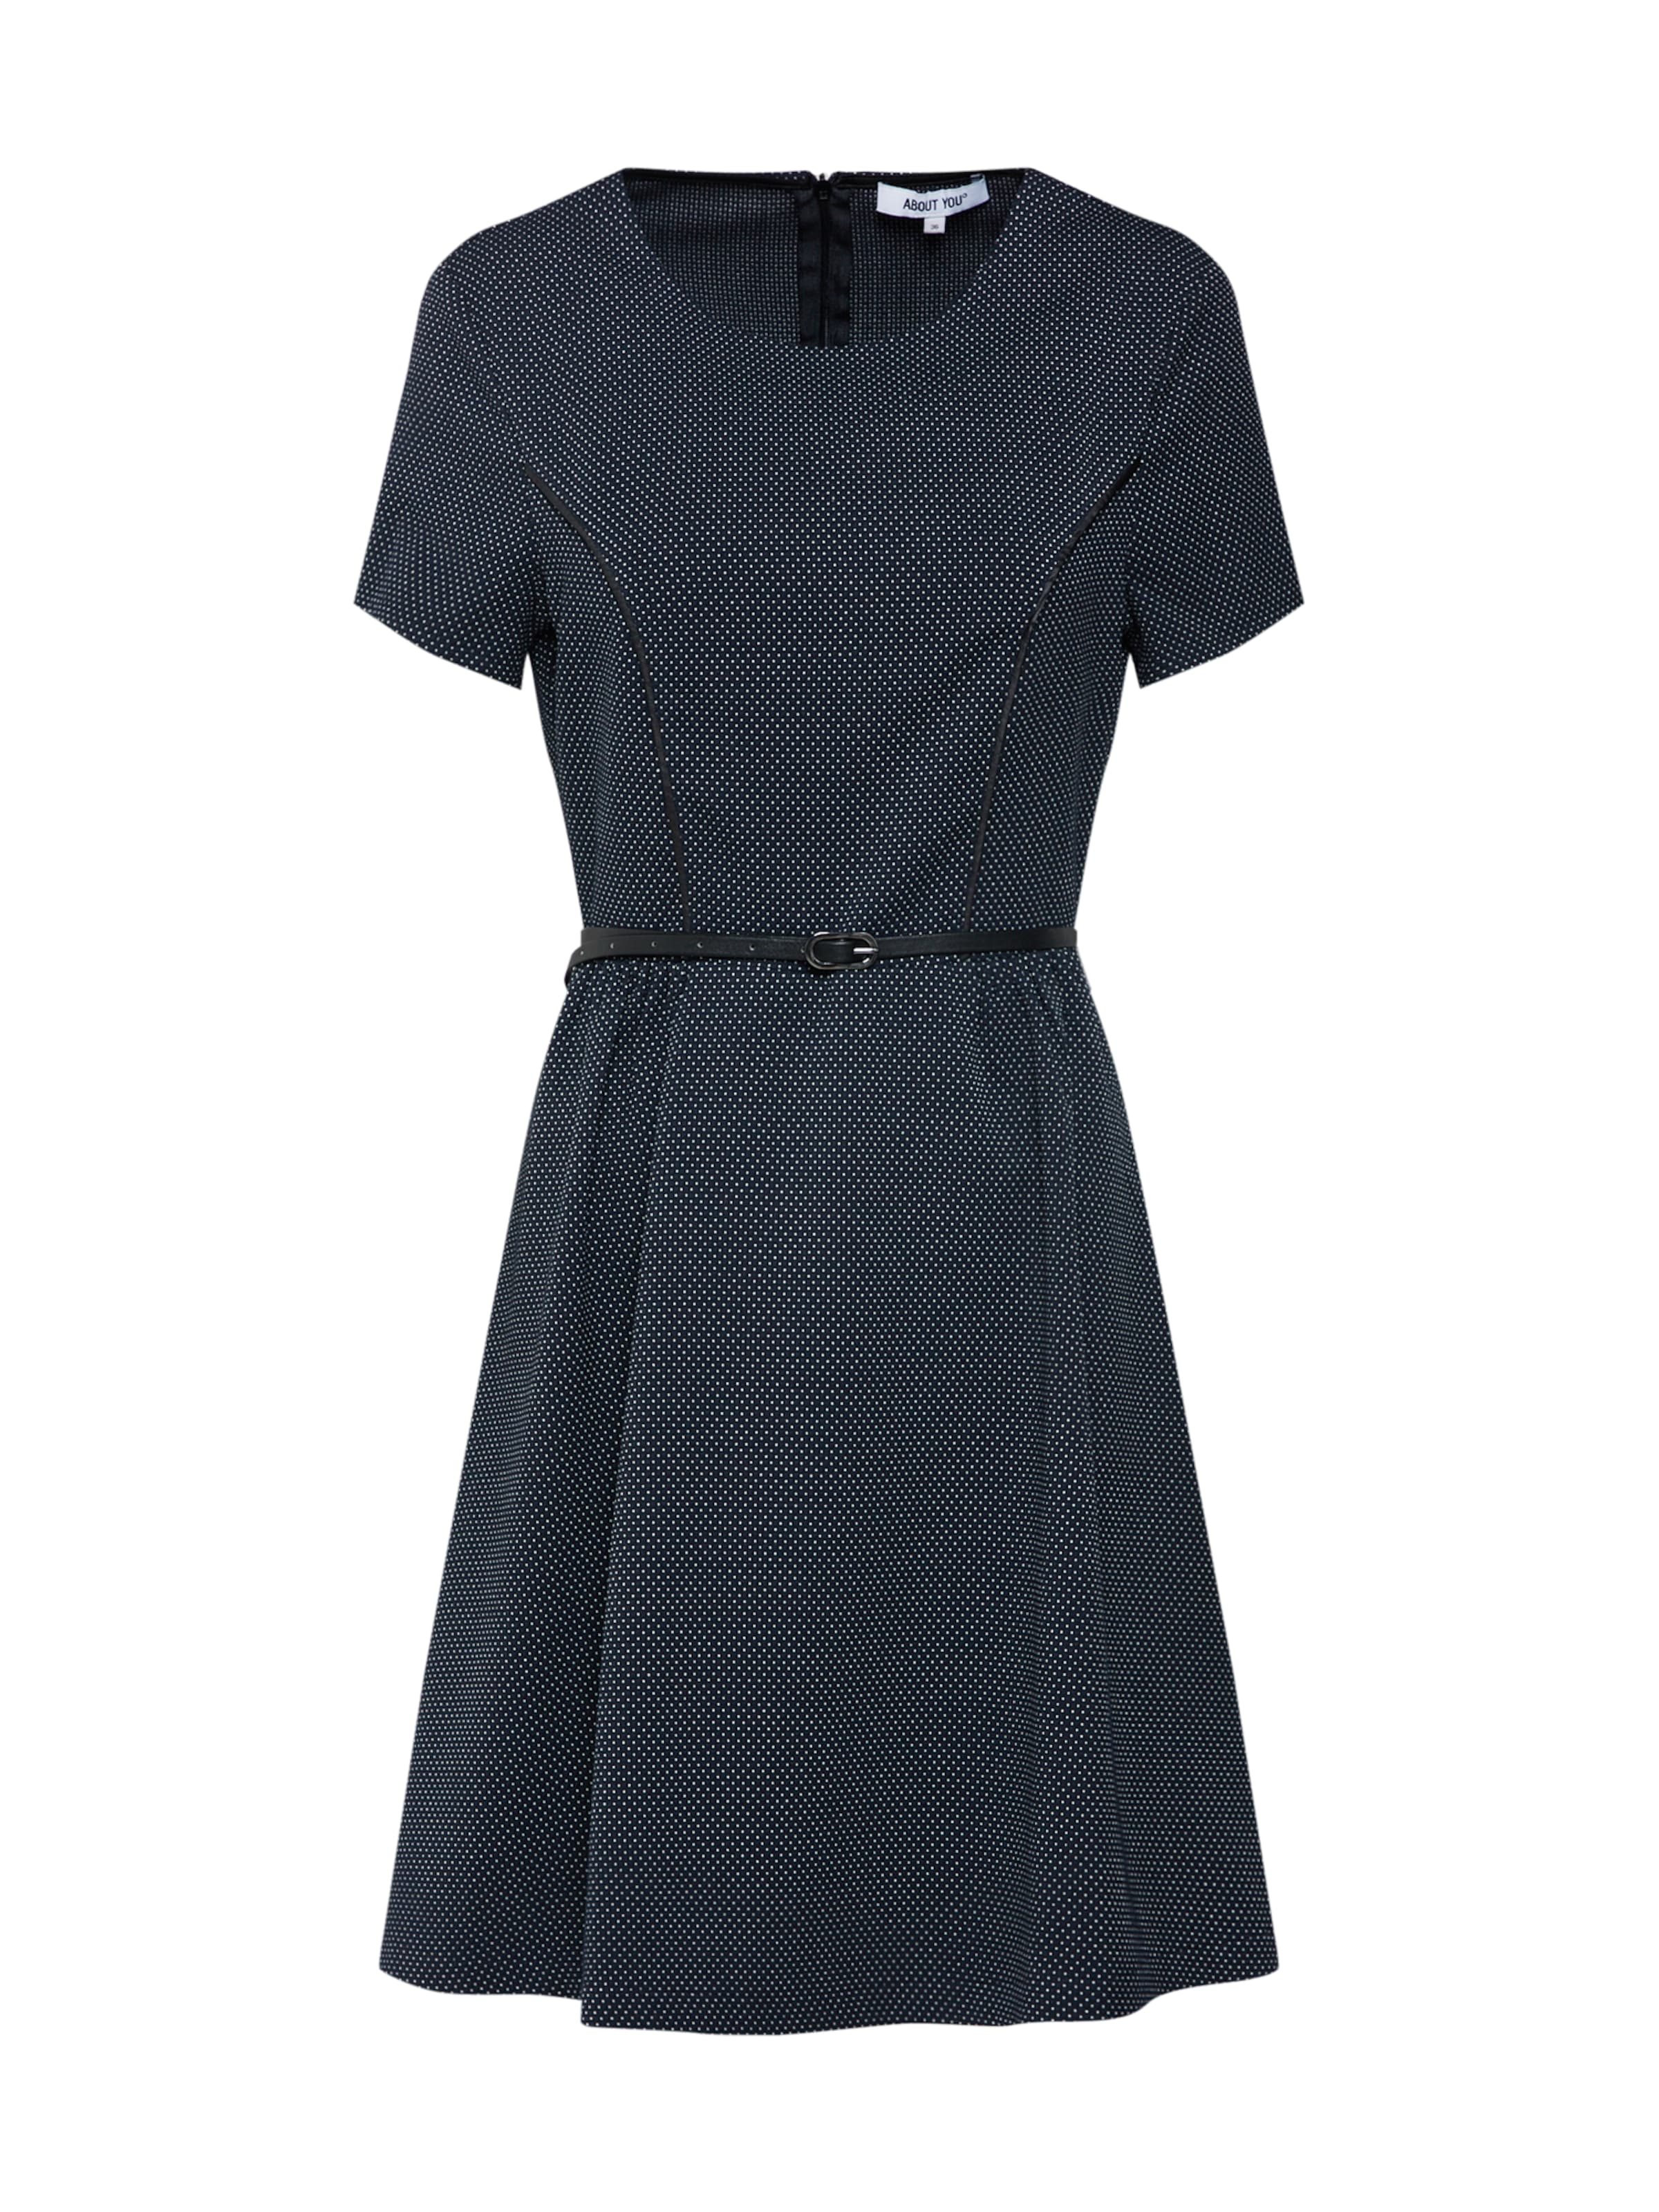 In Navy You About Kleid 'shanice' drBoCxe